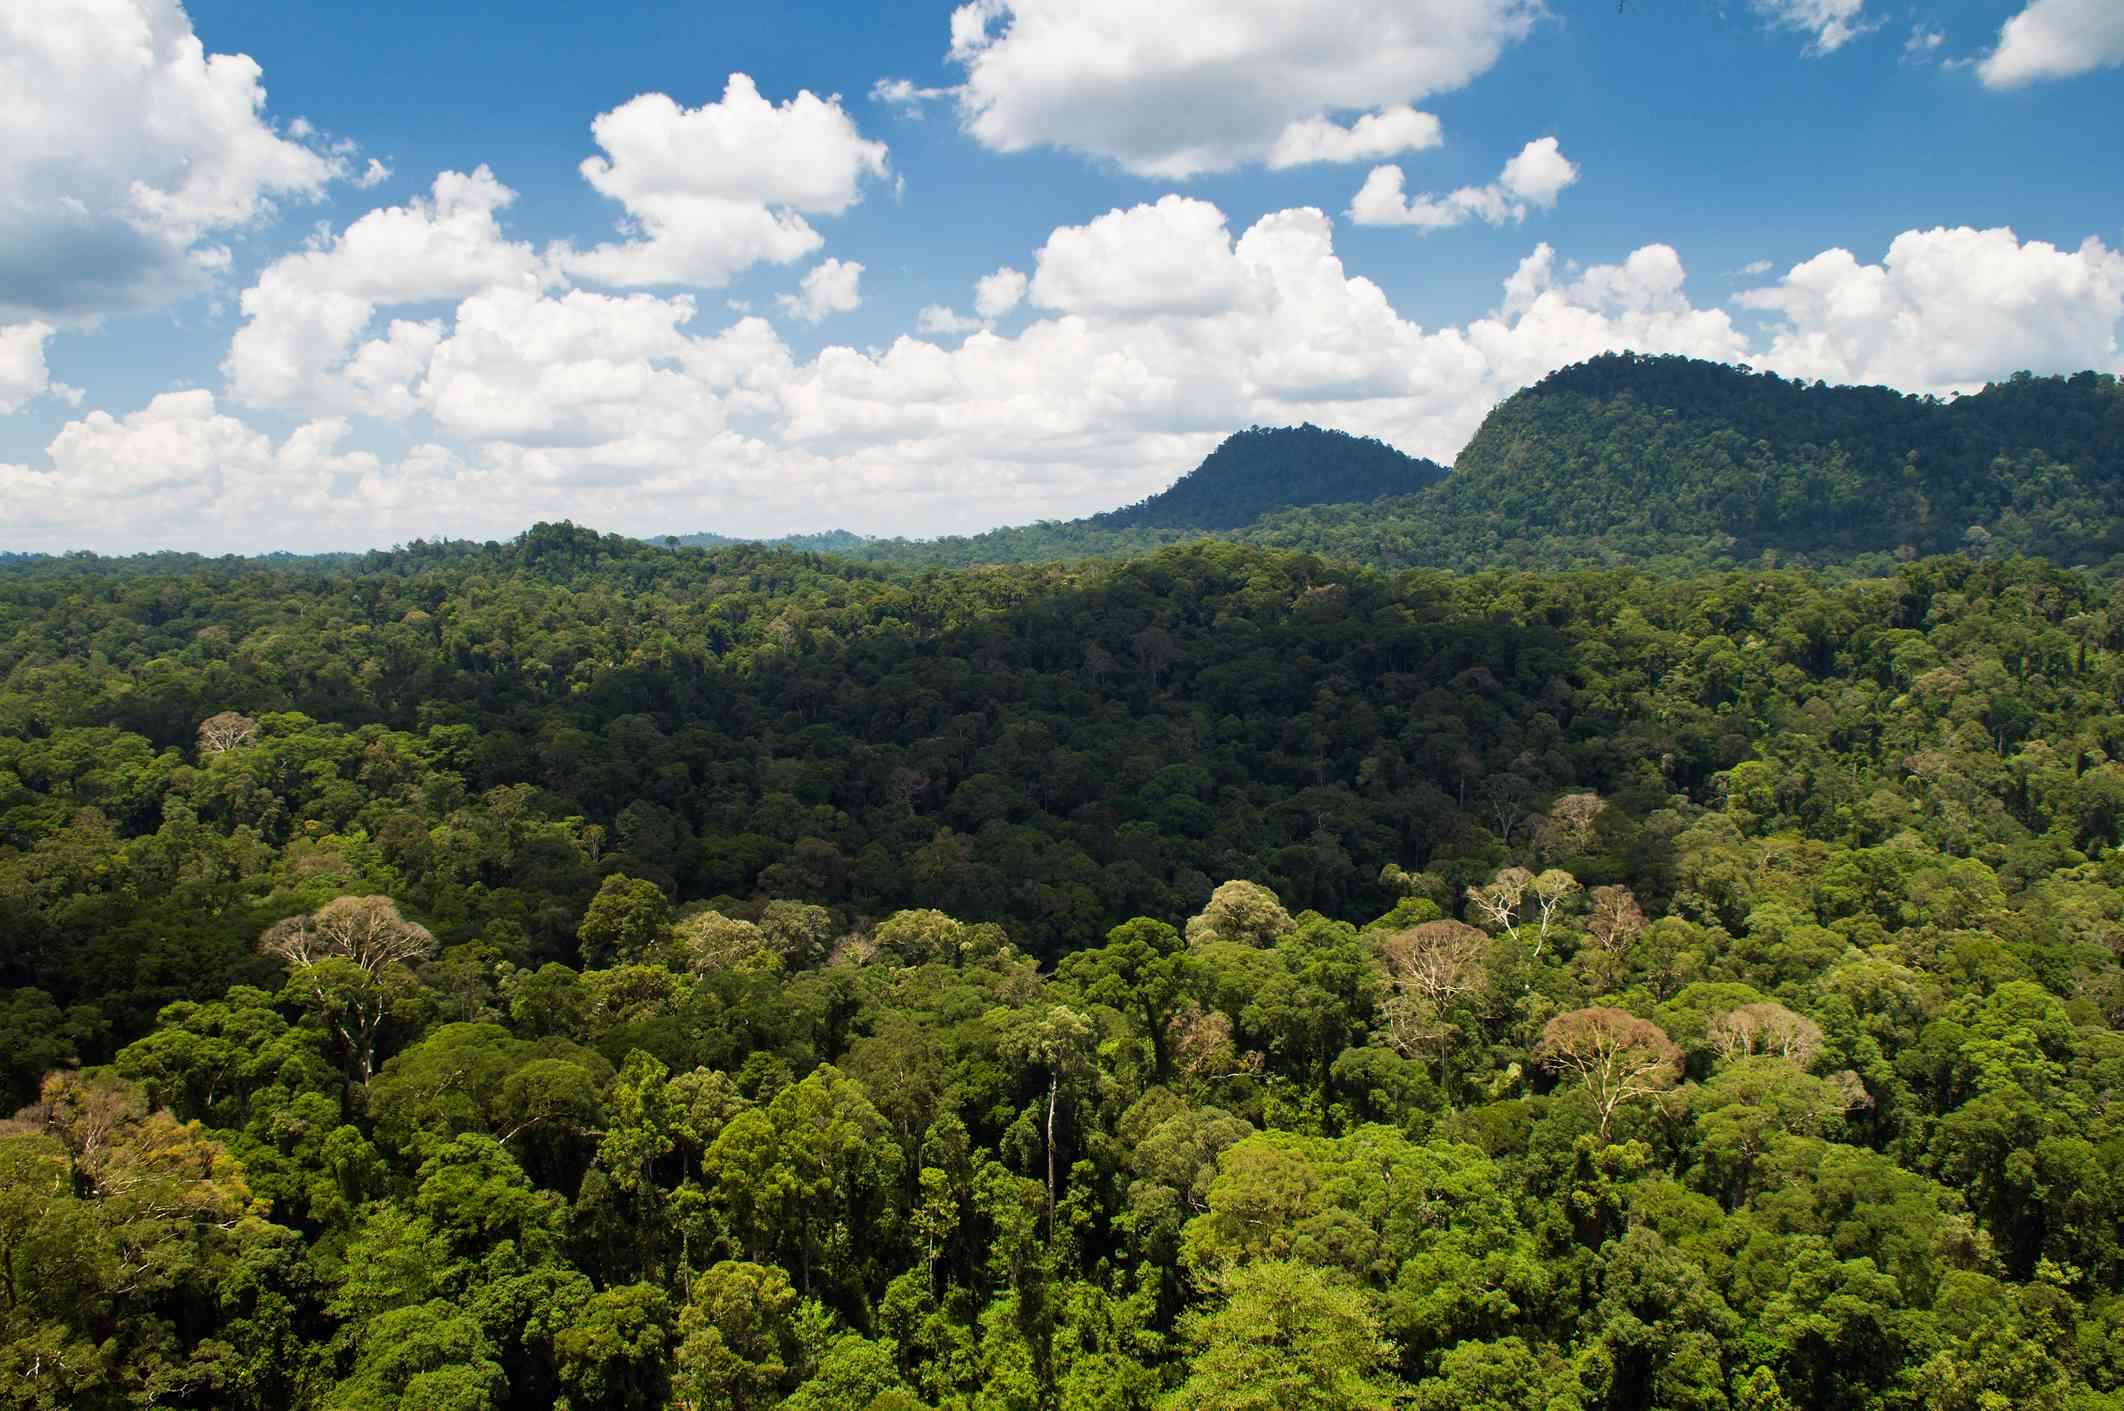 aerial view of forest in Danum Valley, Borneo.